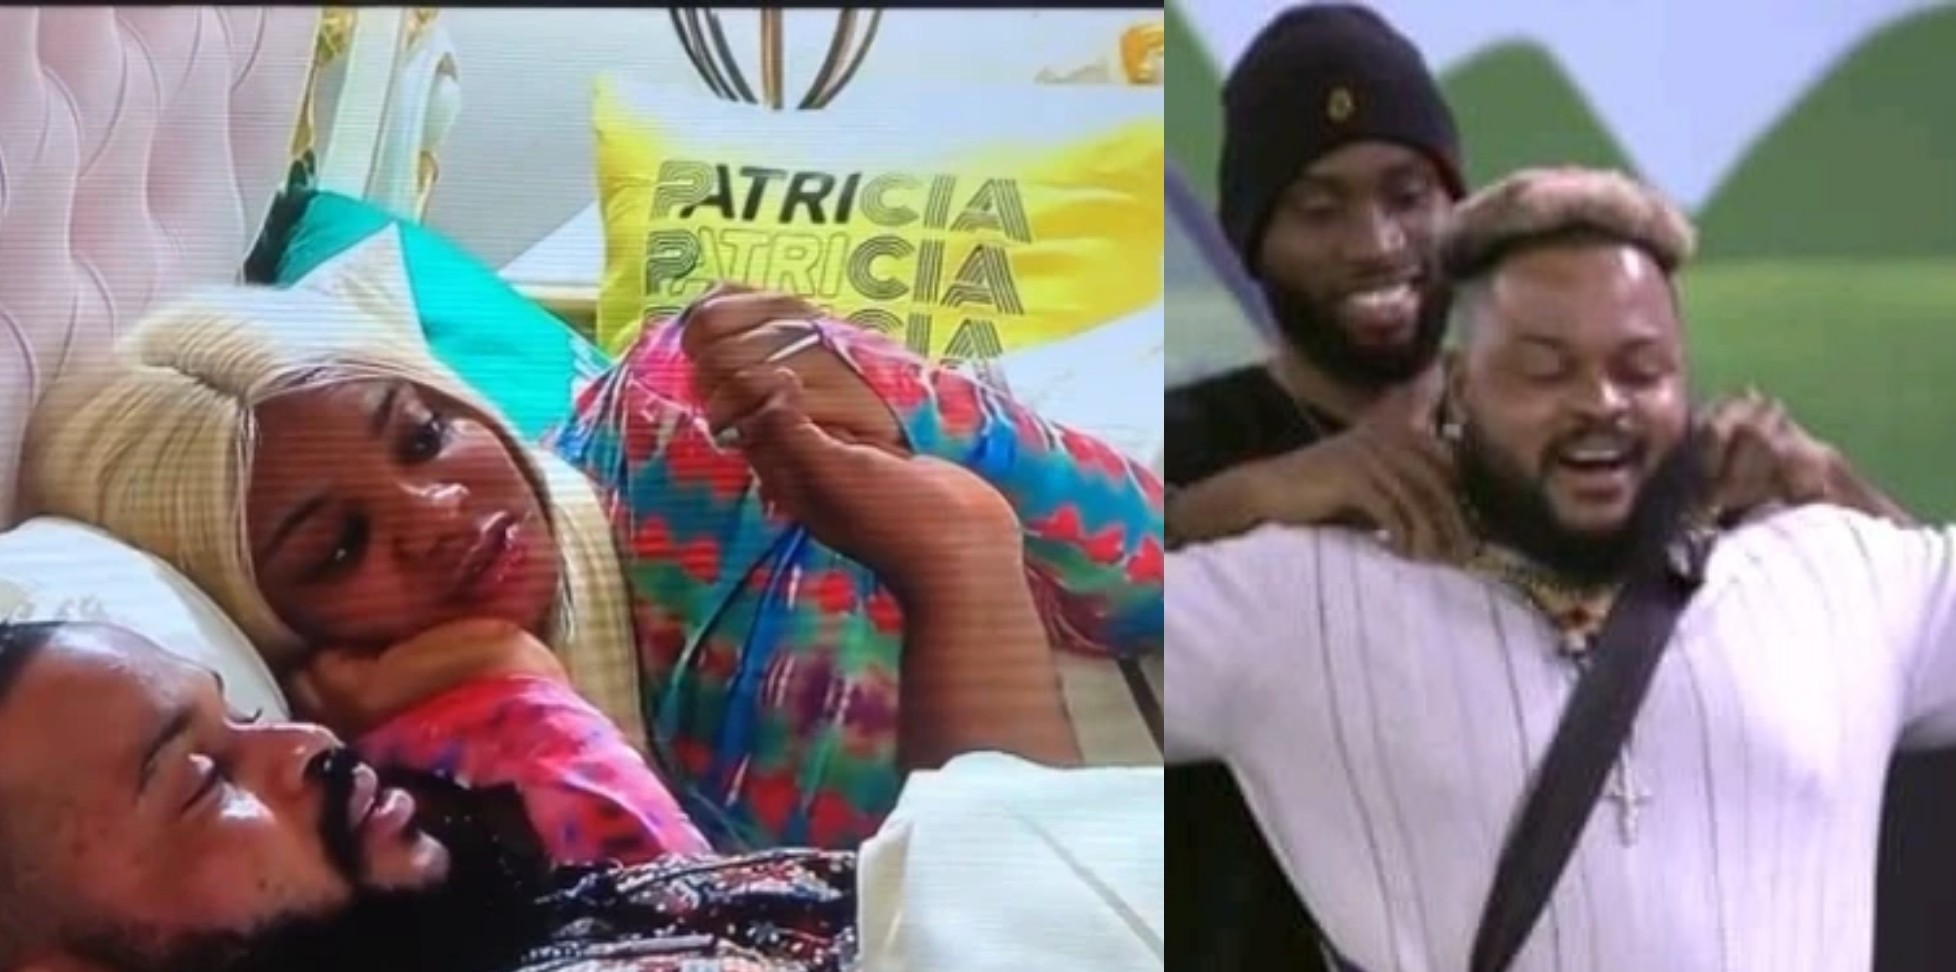 VIDEO: The Housemate I Would Have Saved If I Had Won The Veto Power – Whitnemoney